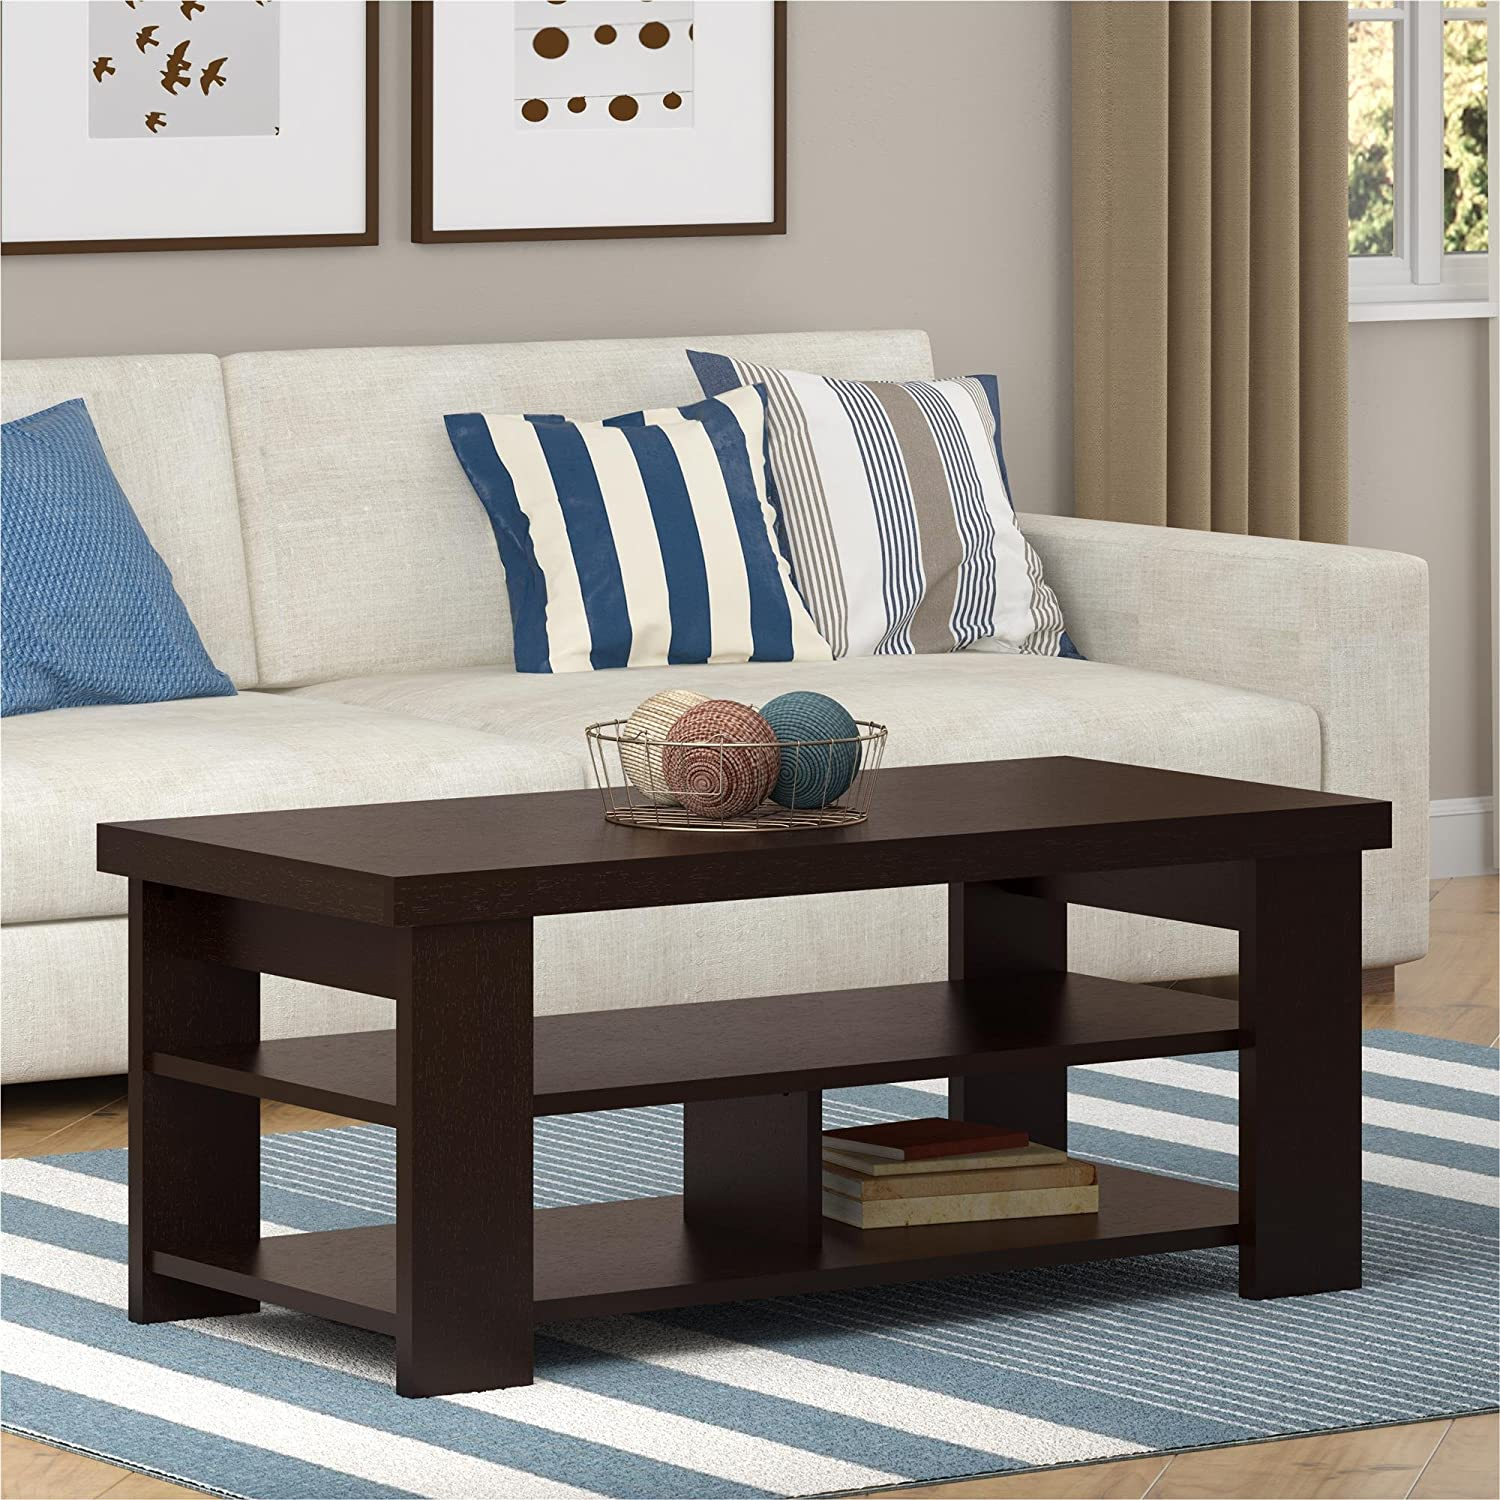 Amazon Ameriwood Home Jensen Coffee Table Espresso Kitchen